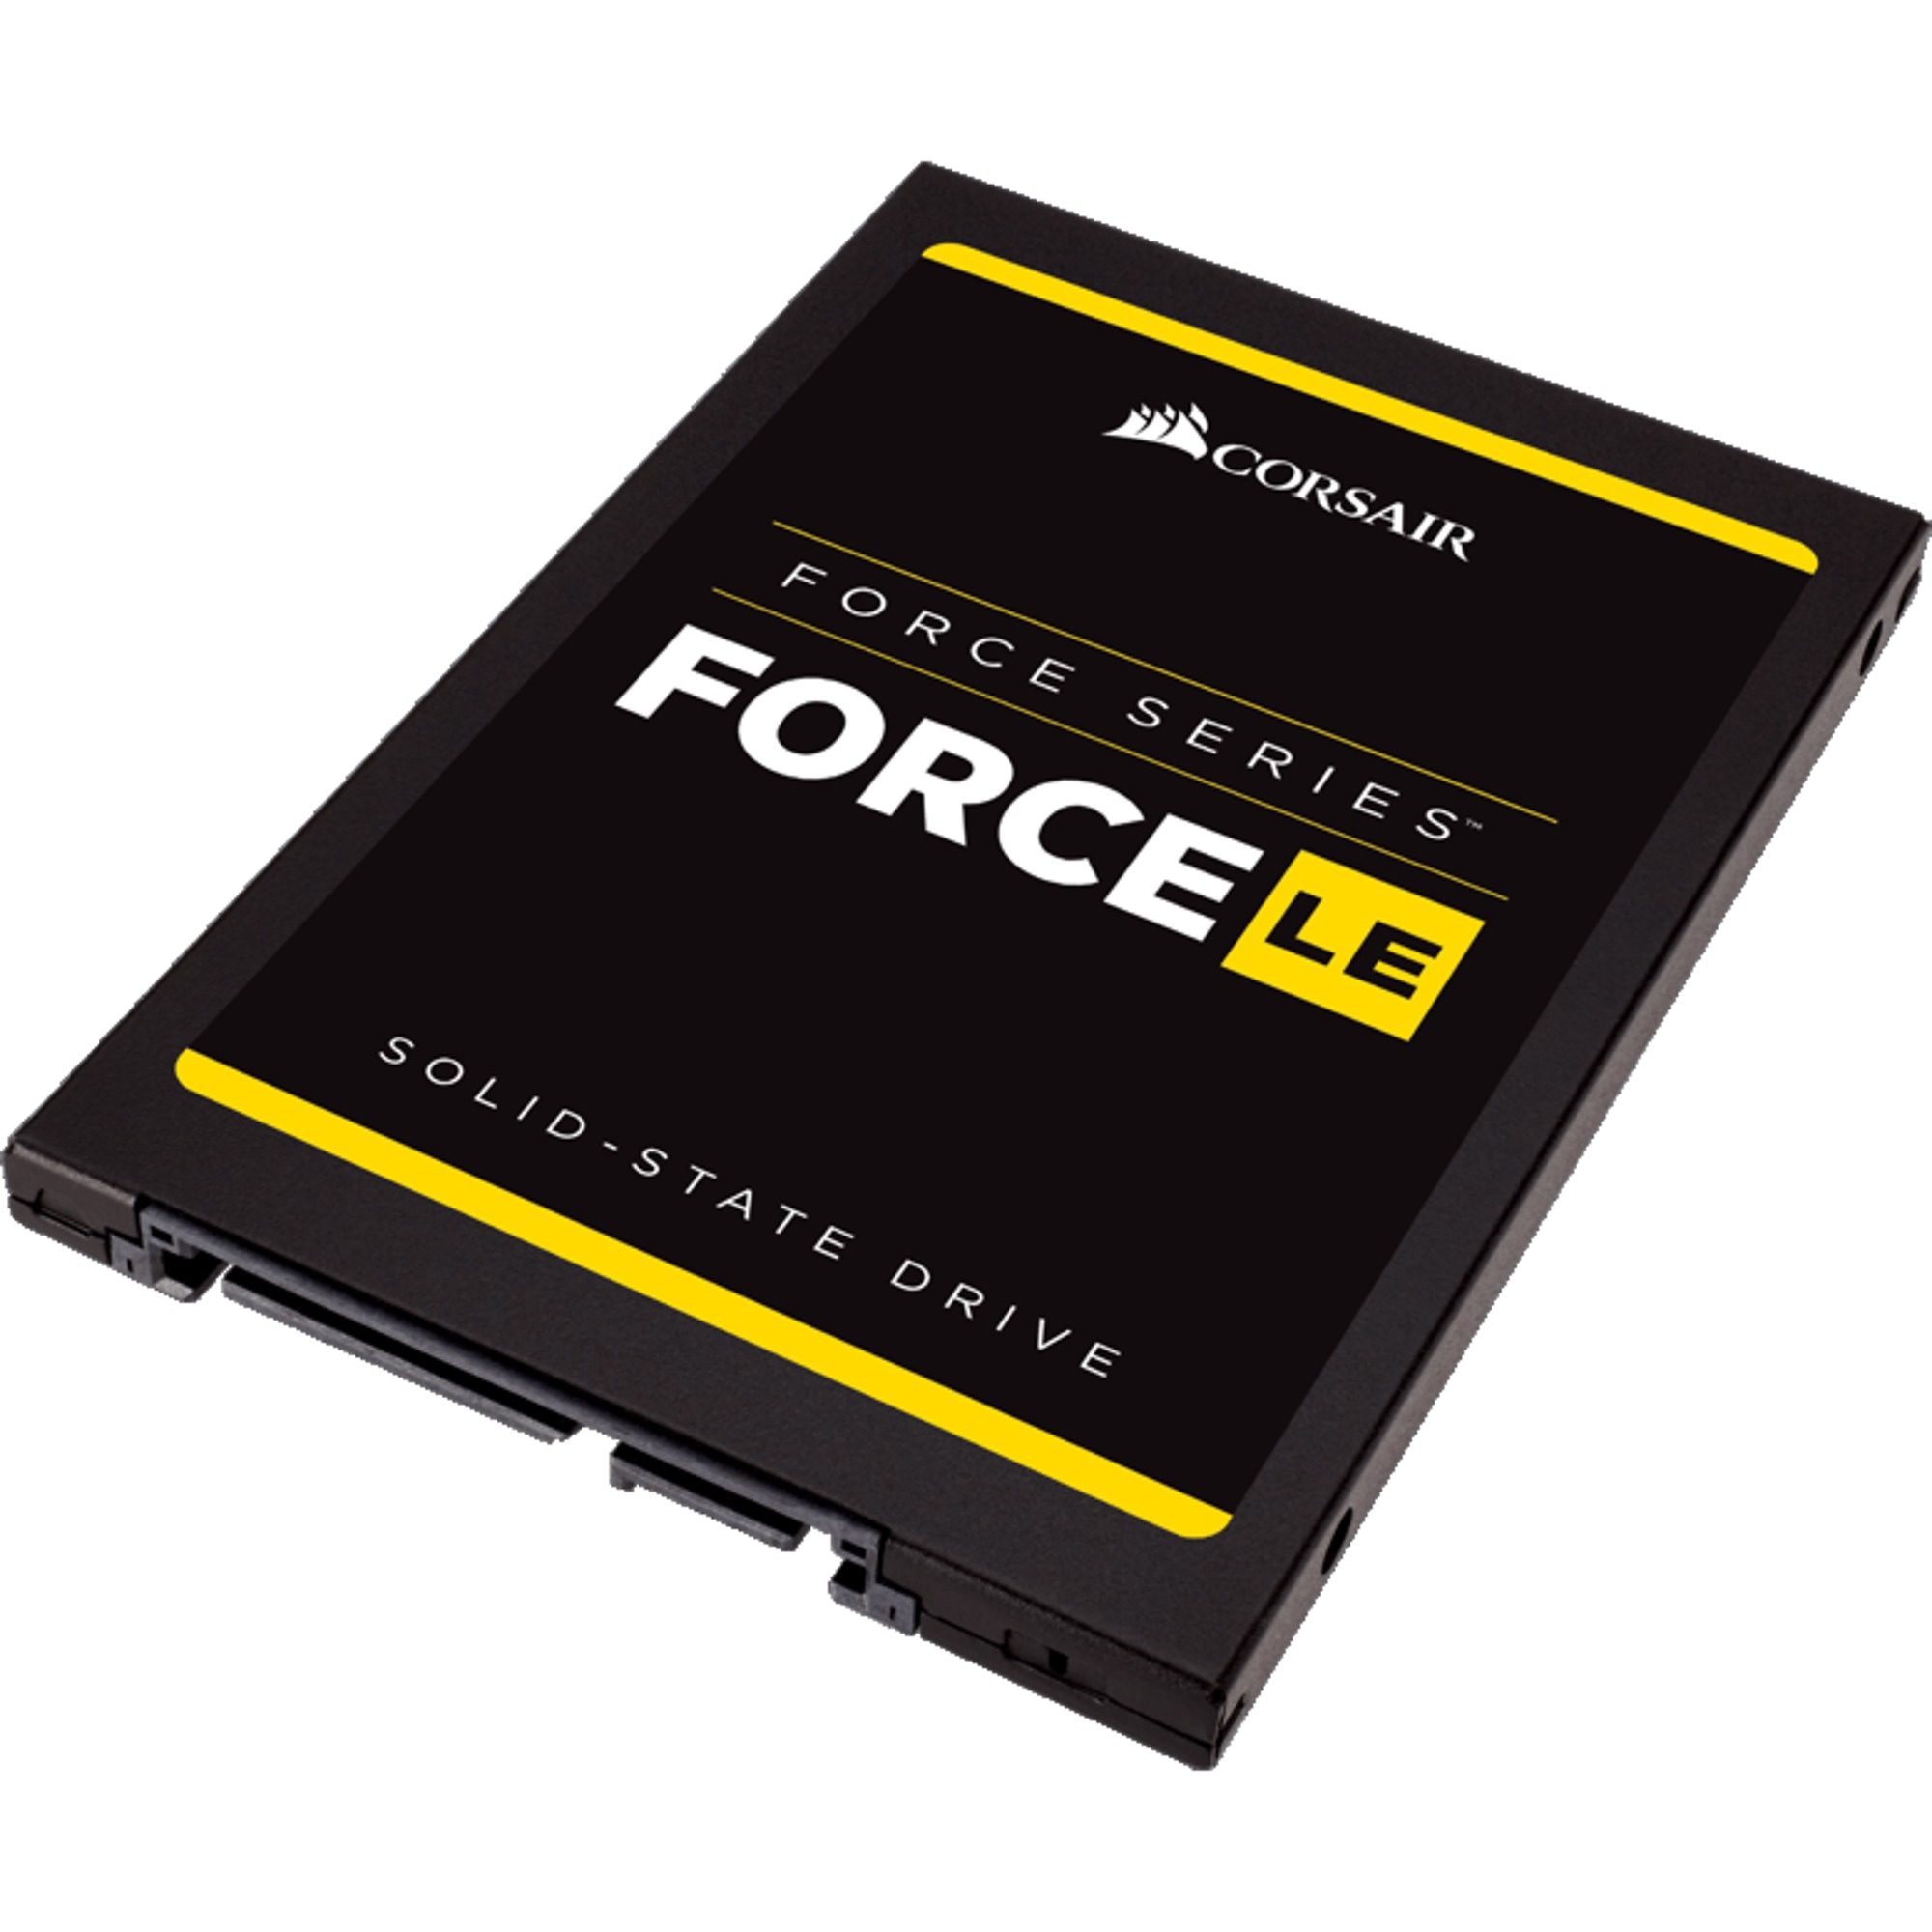 Corsair Solid State Drive »CSSD-F480GBLEB 480 GB«